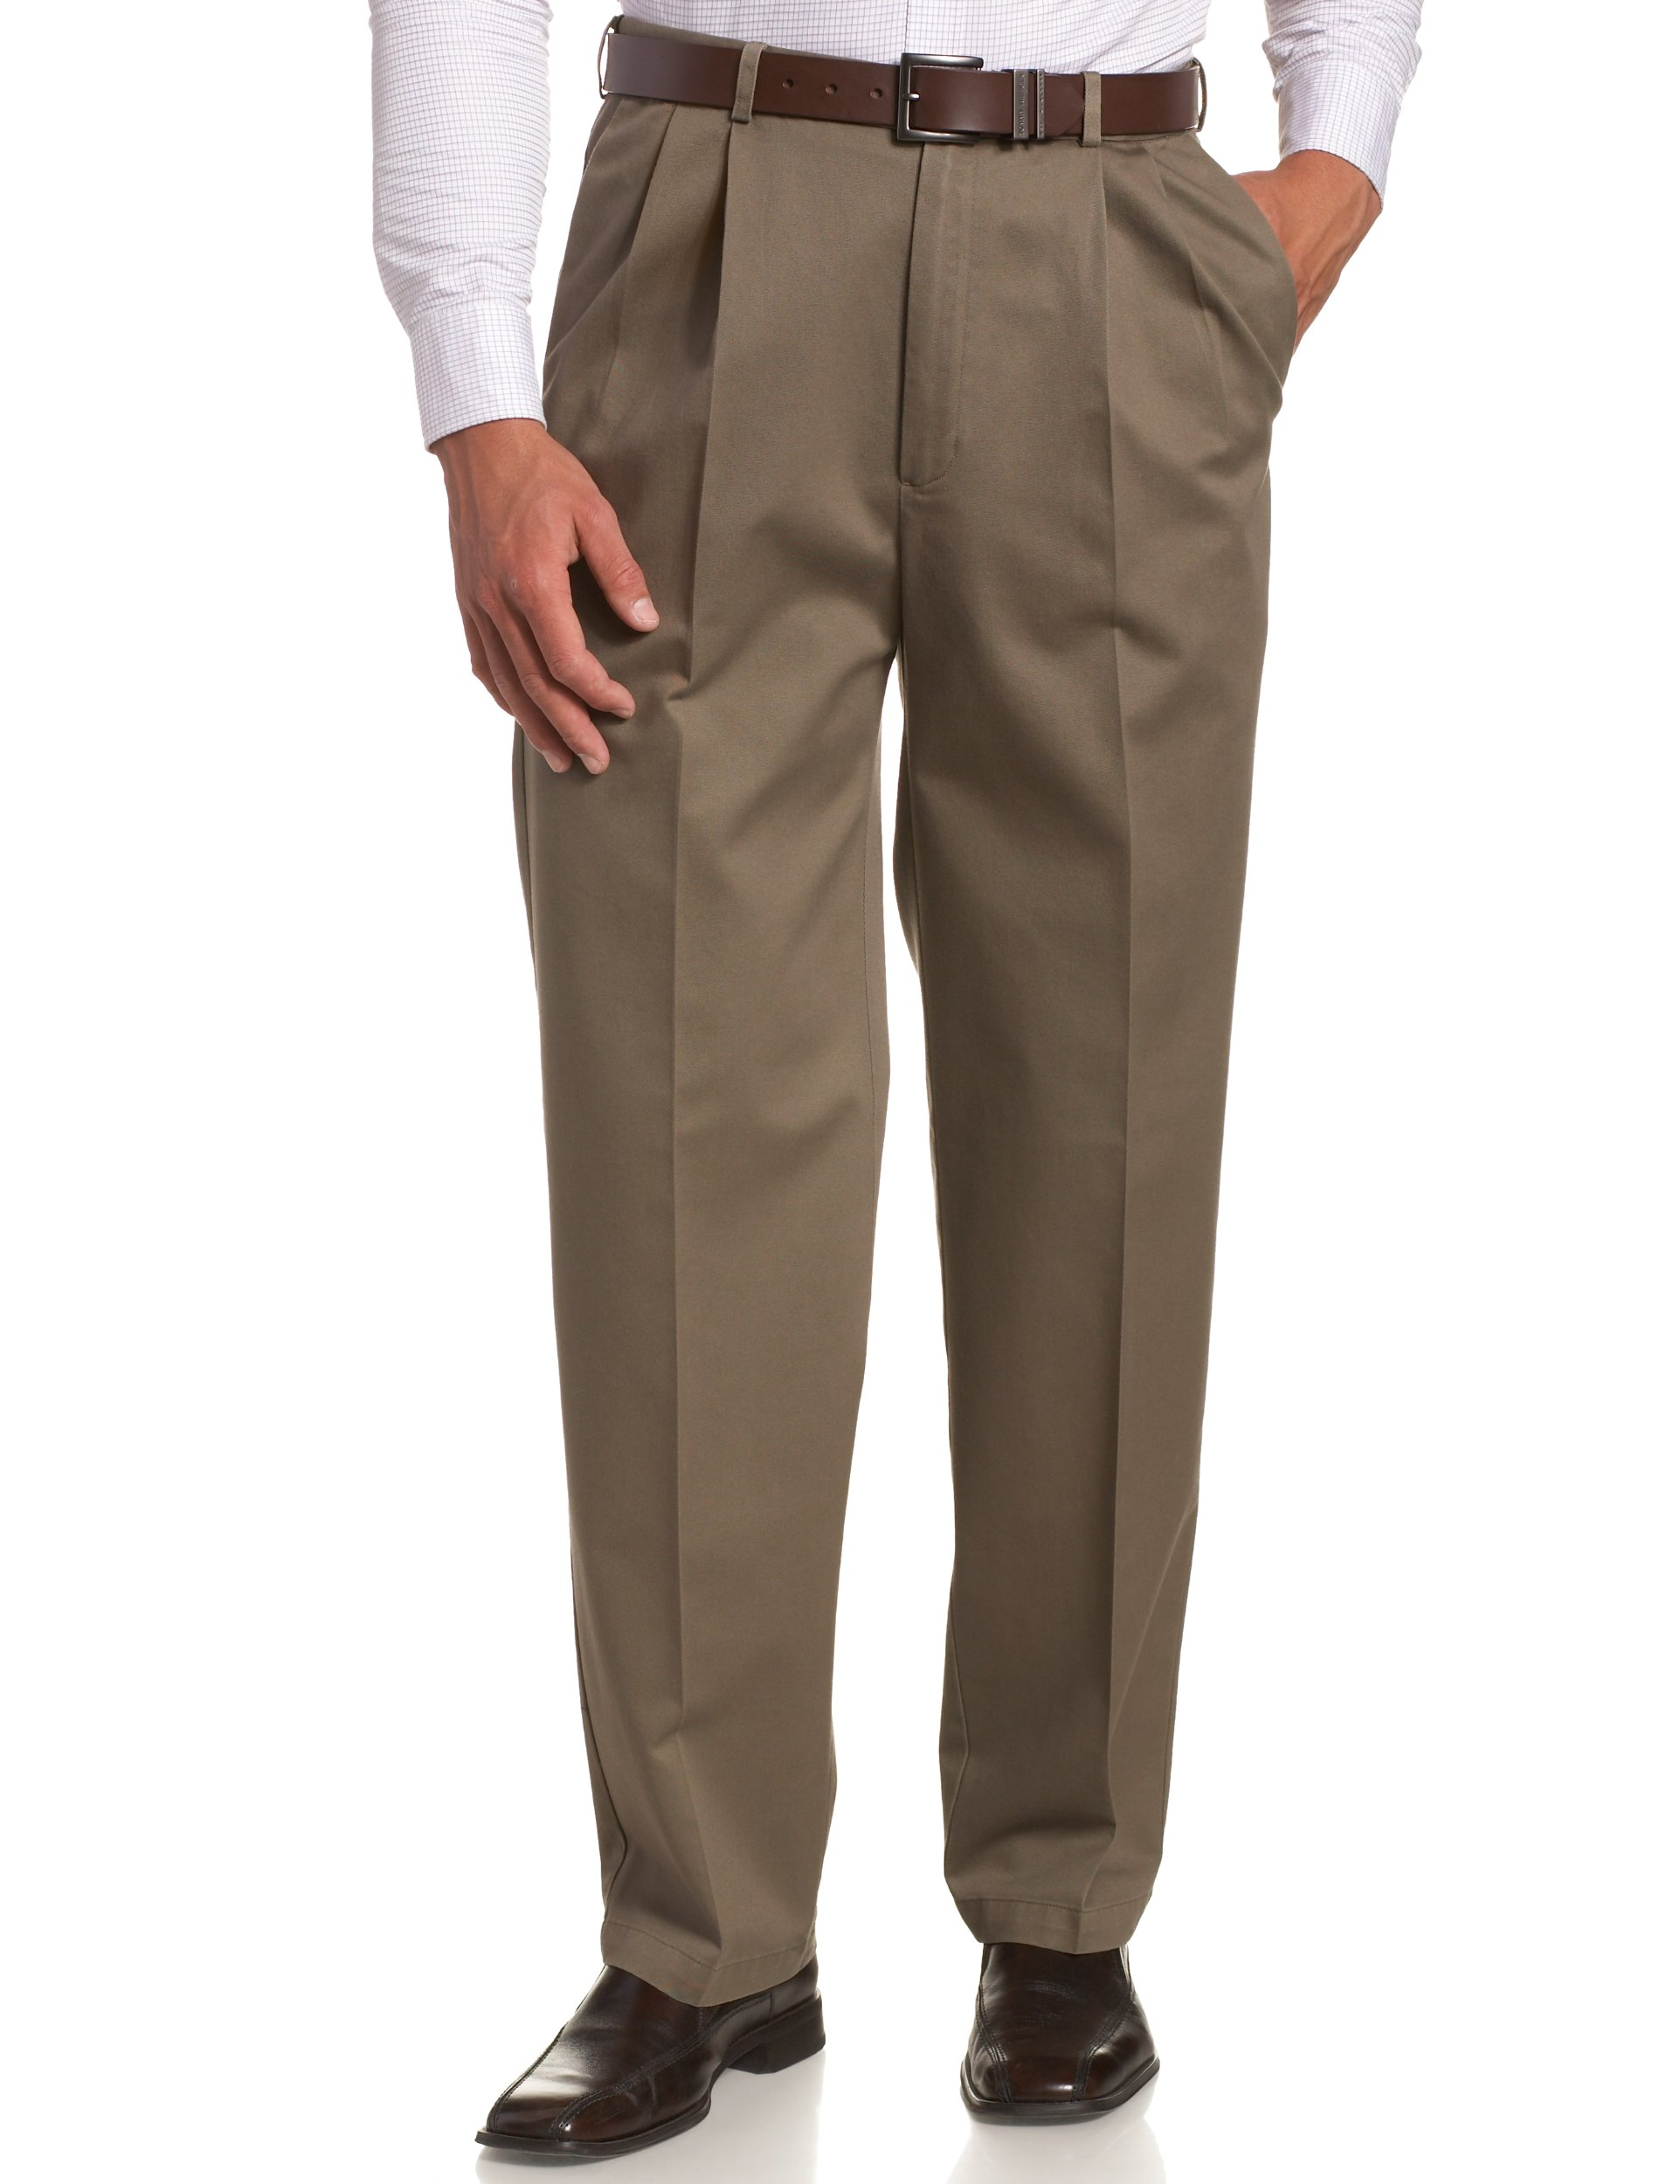 Haggar Men's Work To Weekend Khakis Hidden Expandable Waist No Iron Pleat Front Pant,Bark,42x29